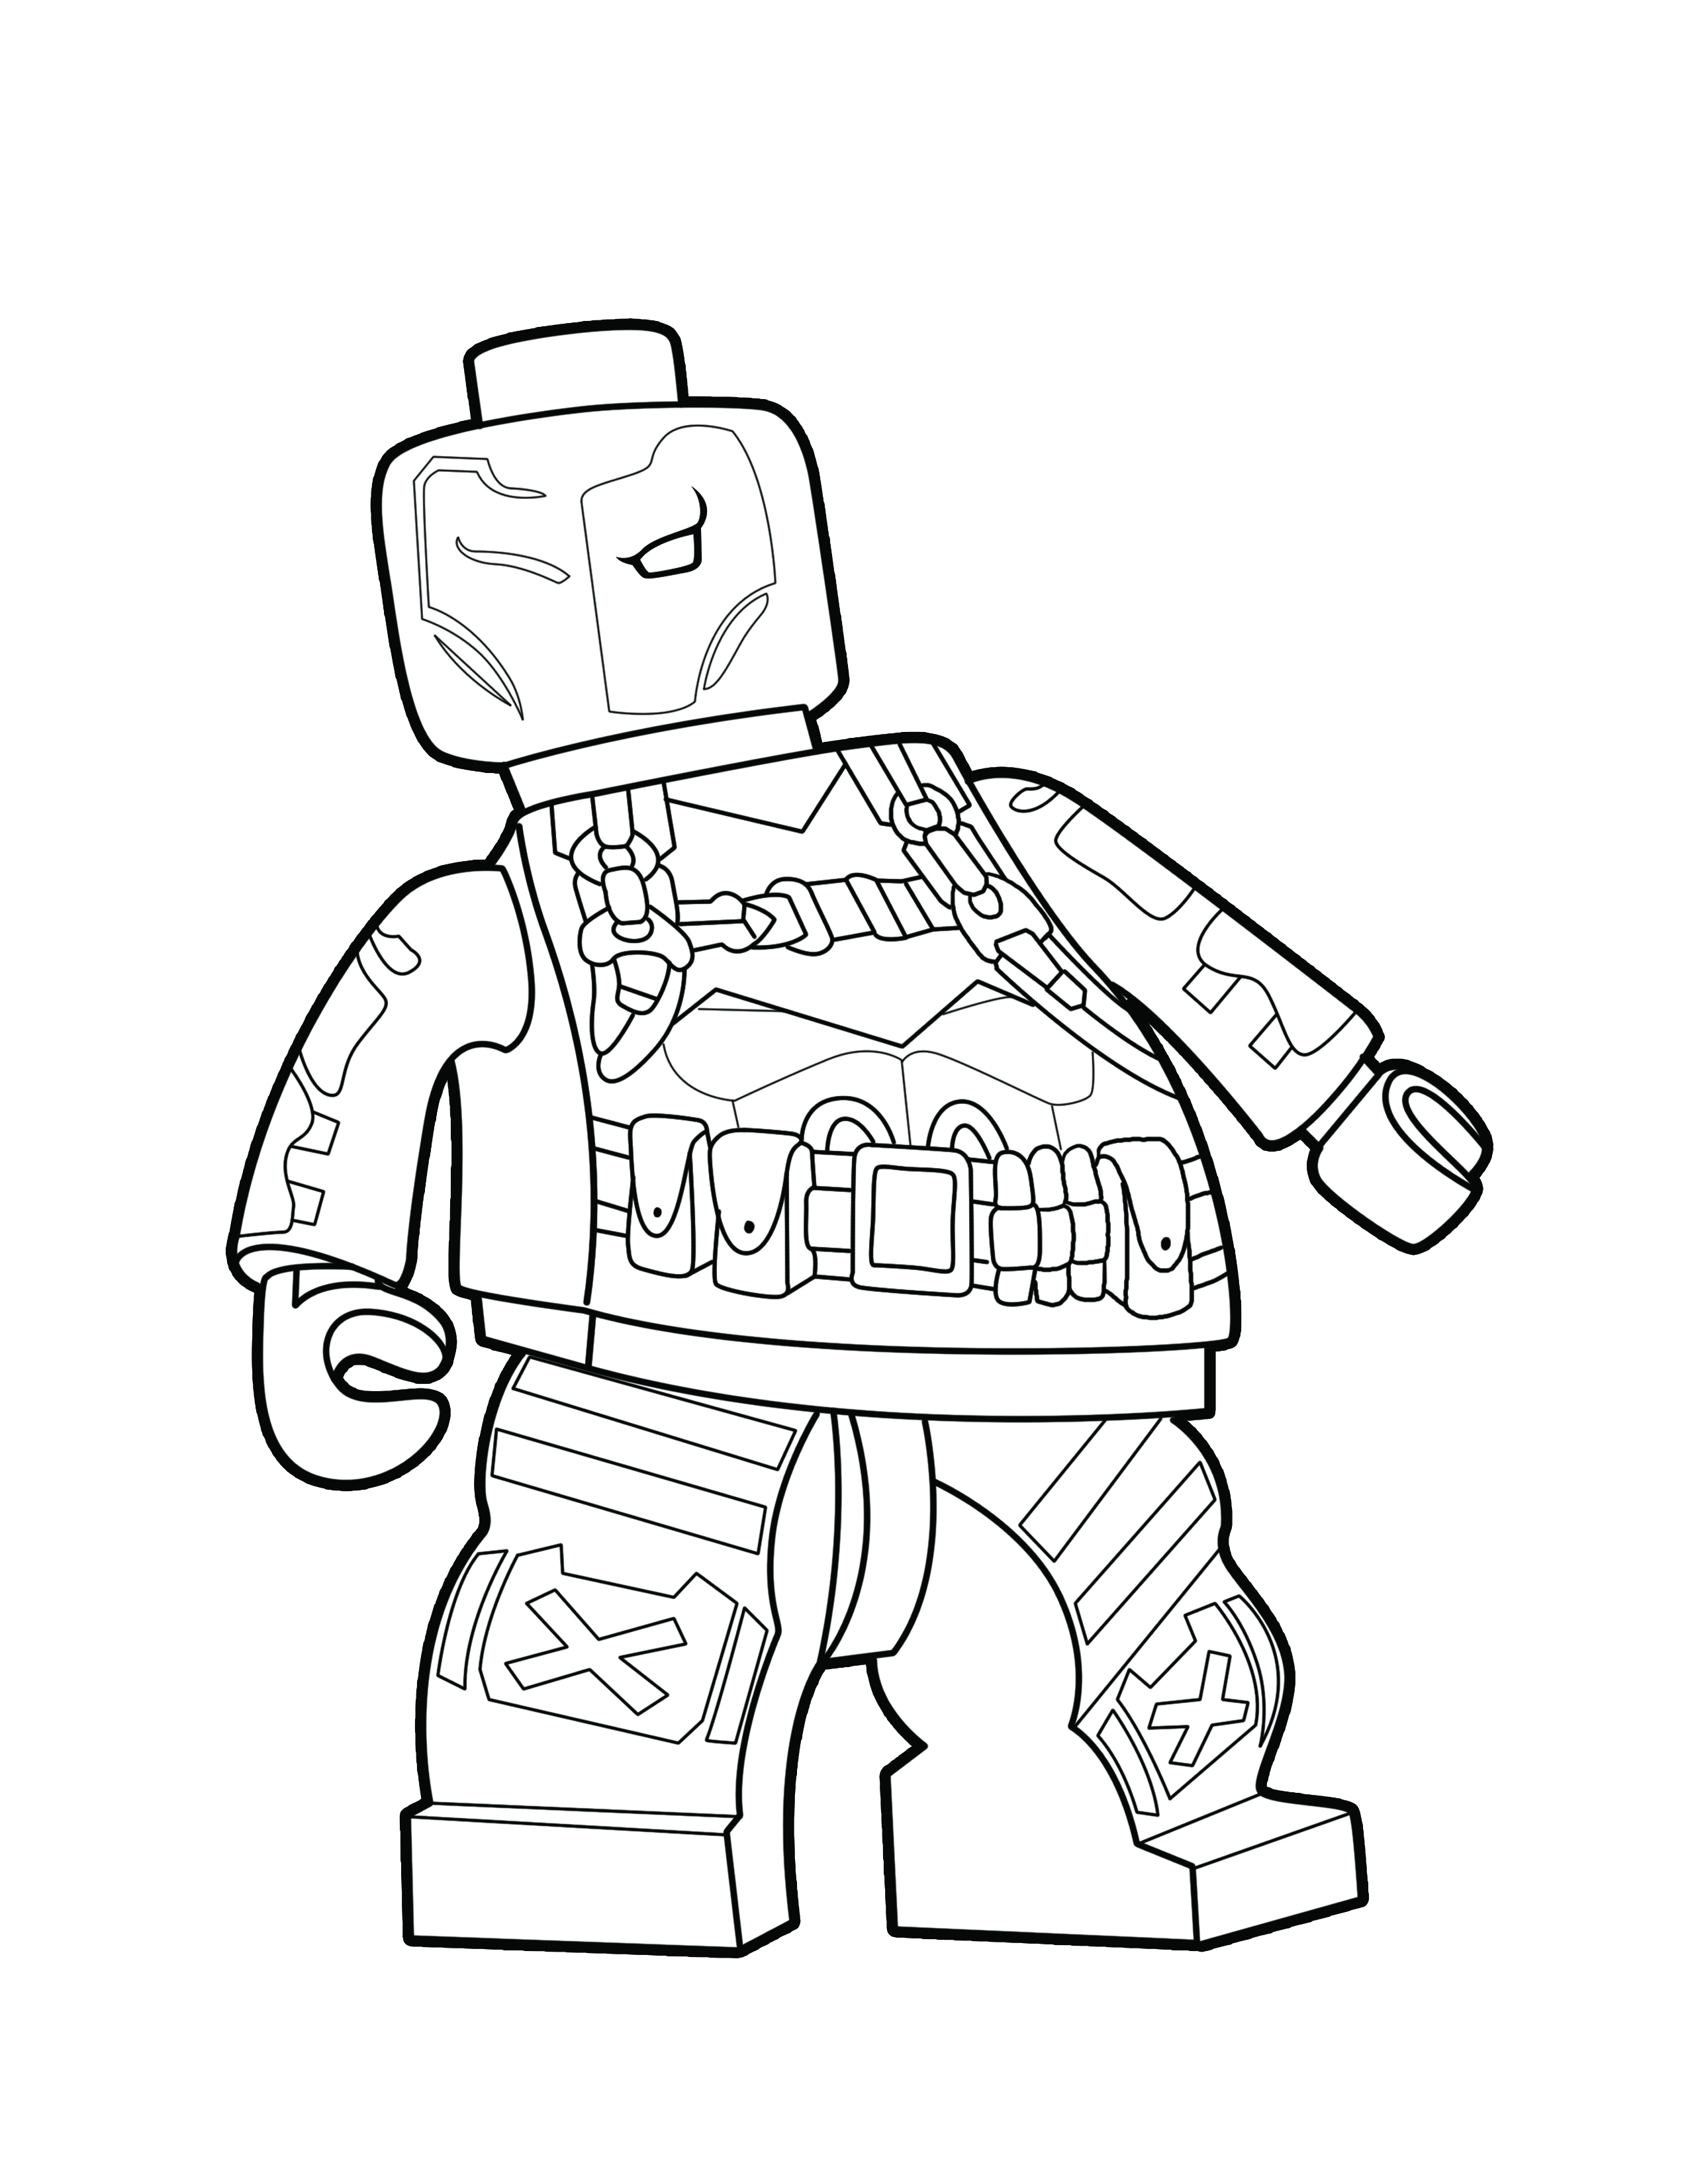 marvel supervillains coloring pages - photo#43